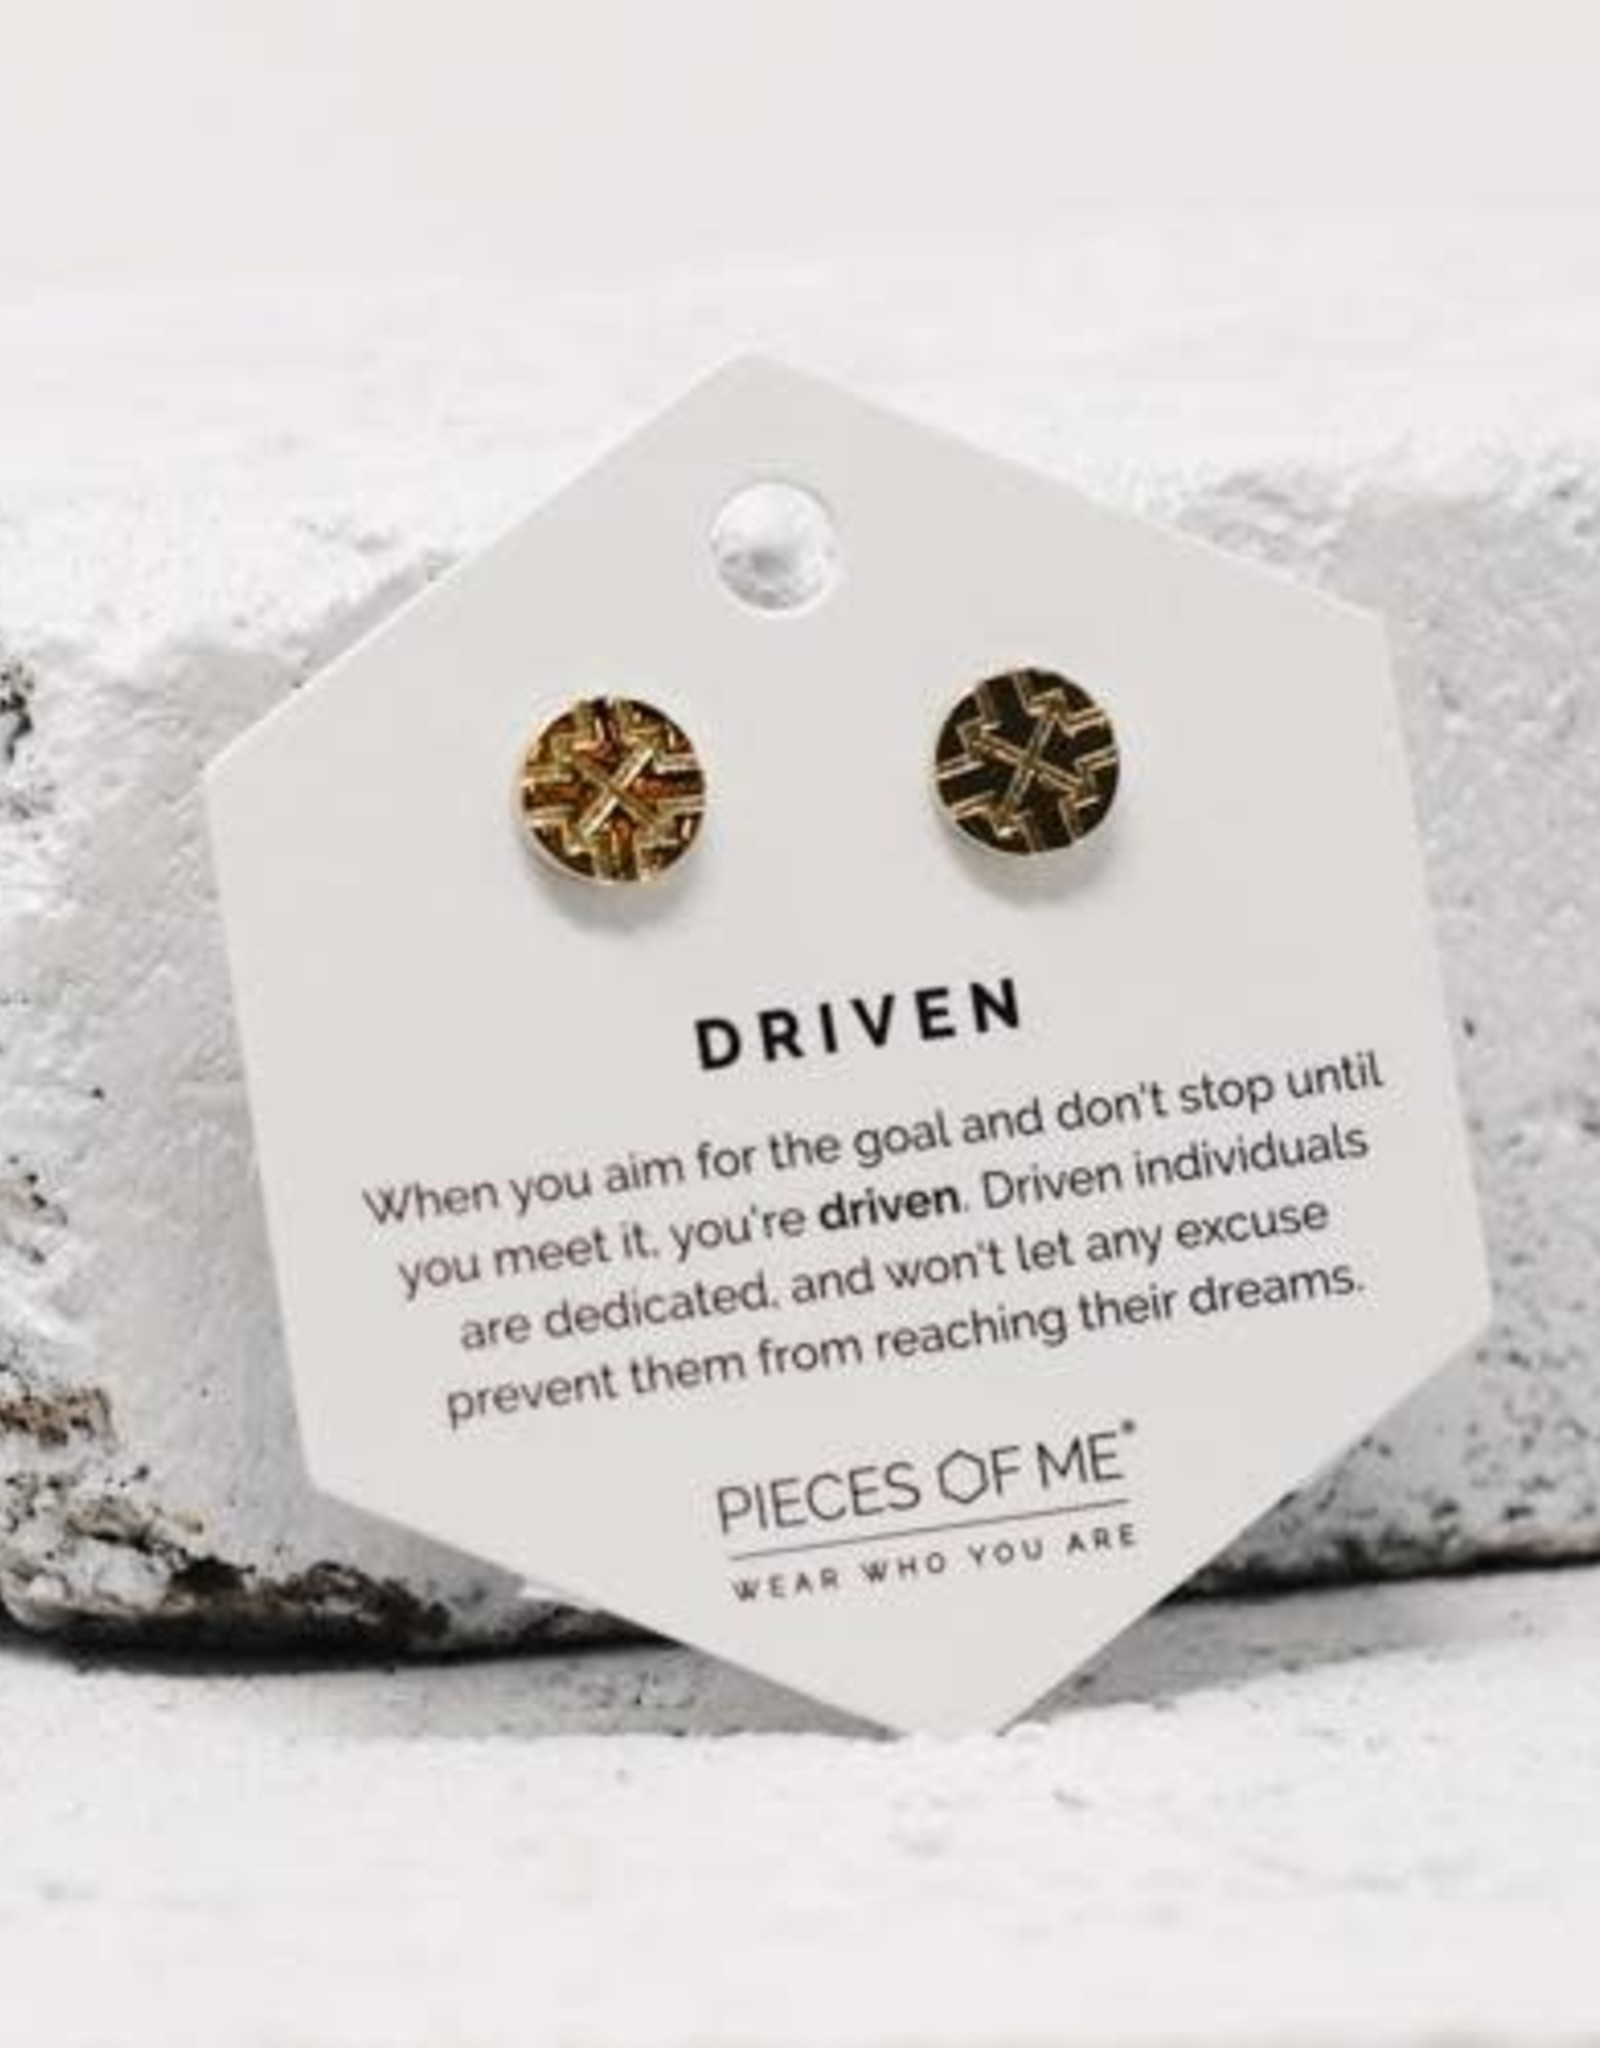 Pieces of Me Earrings -Driven Gold